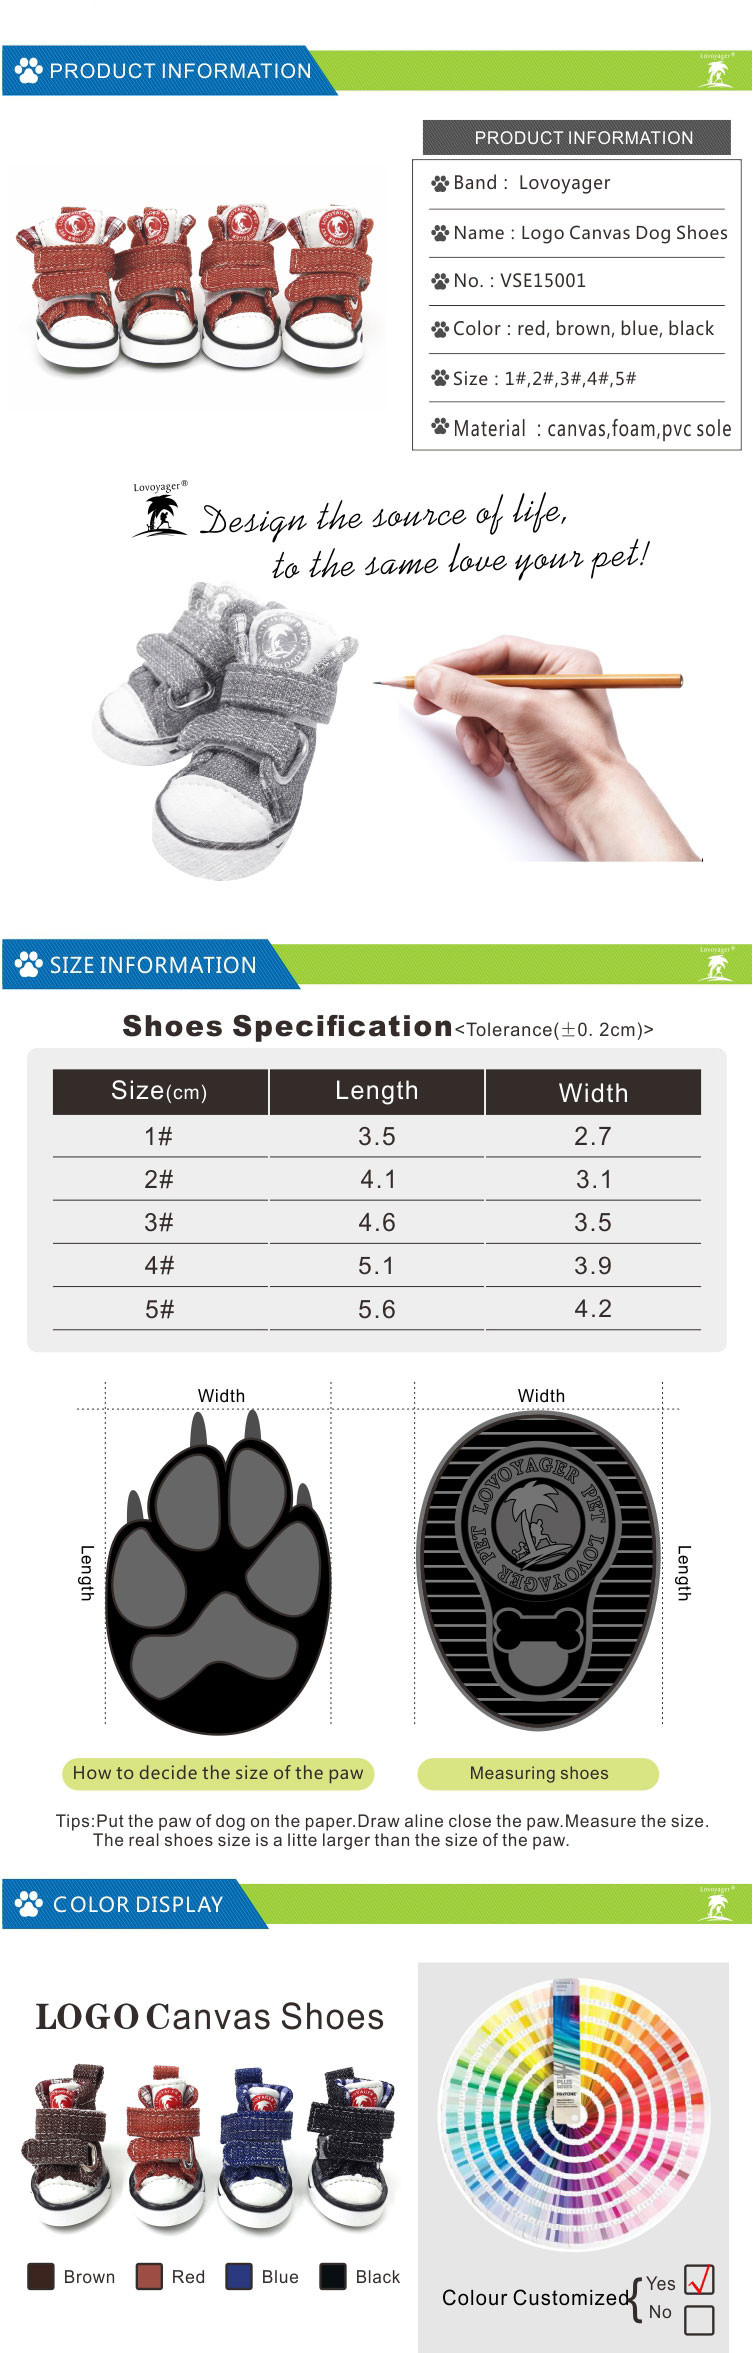 hight resolution of dog sneakers lovoyager wholesale pet accessories canvas dog shoes non slip blue jean dog sneakers dog boots